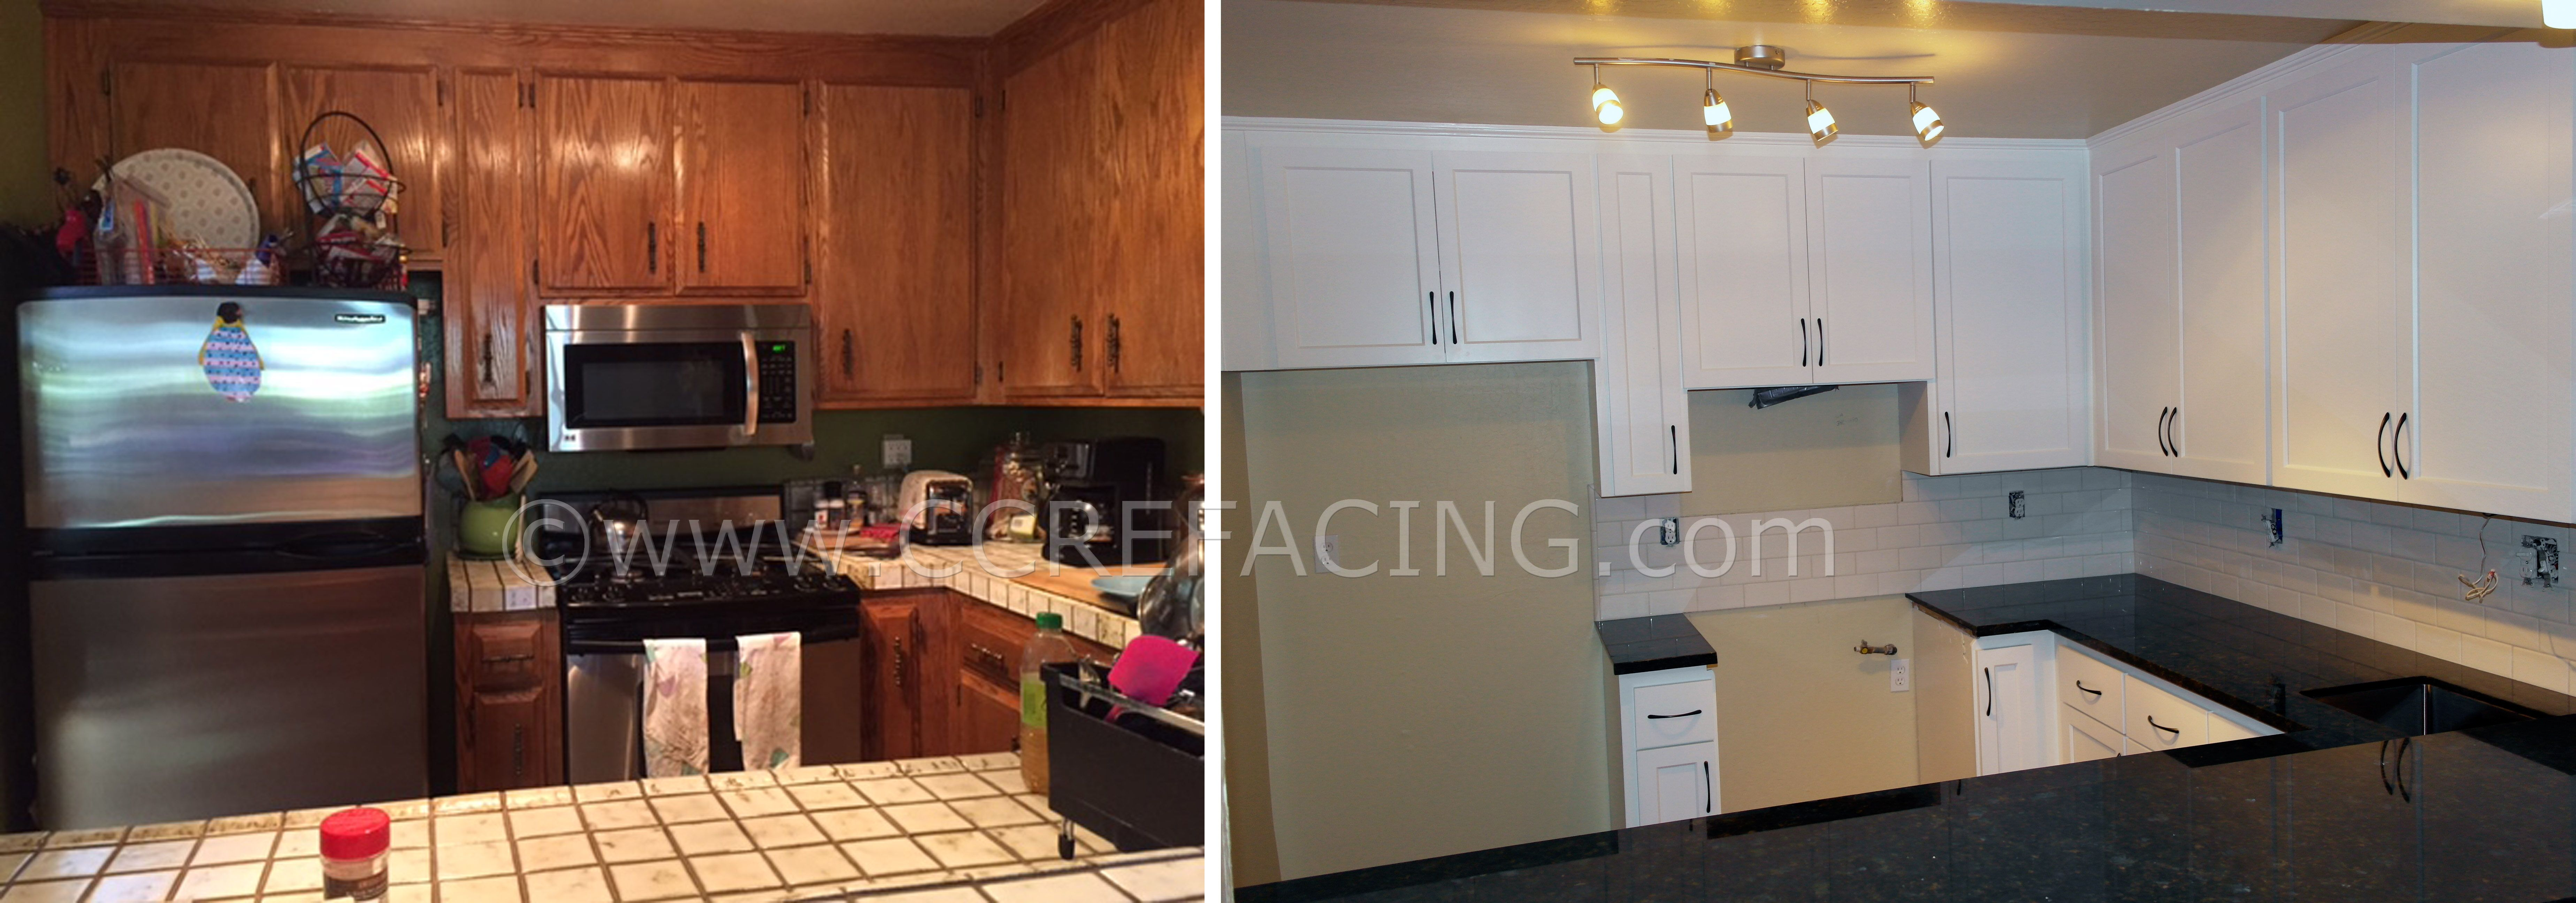 Redwood City Reface Refacing With White Shaker Cabinet Doors Shaker Cabinet Doors Cabinet Refacing White Shaker Cabinets